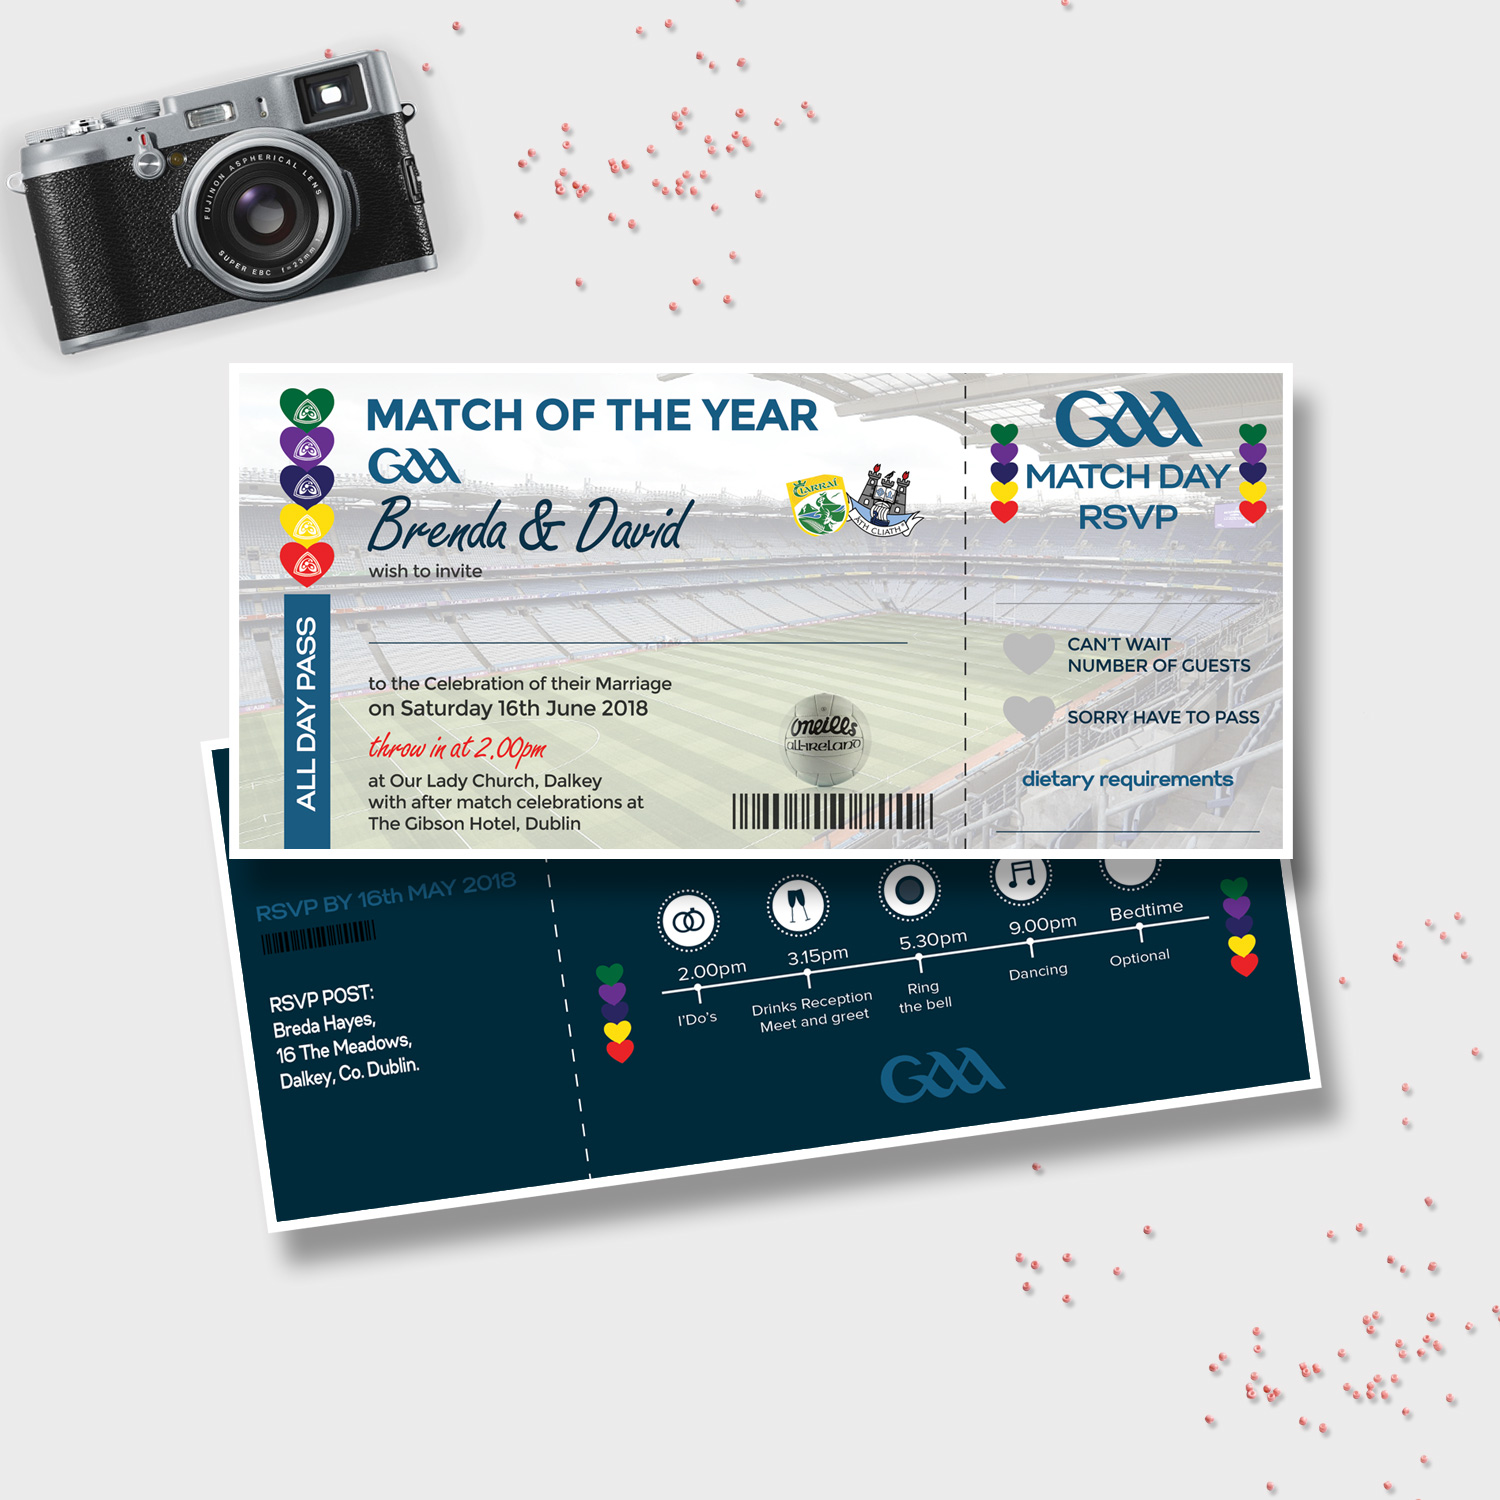 GAA Ticket Wedding Ticket